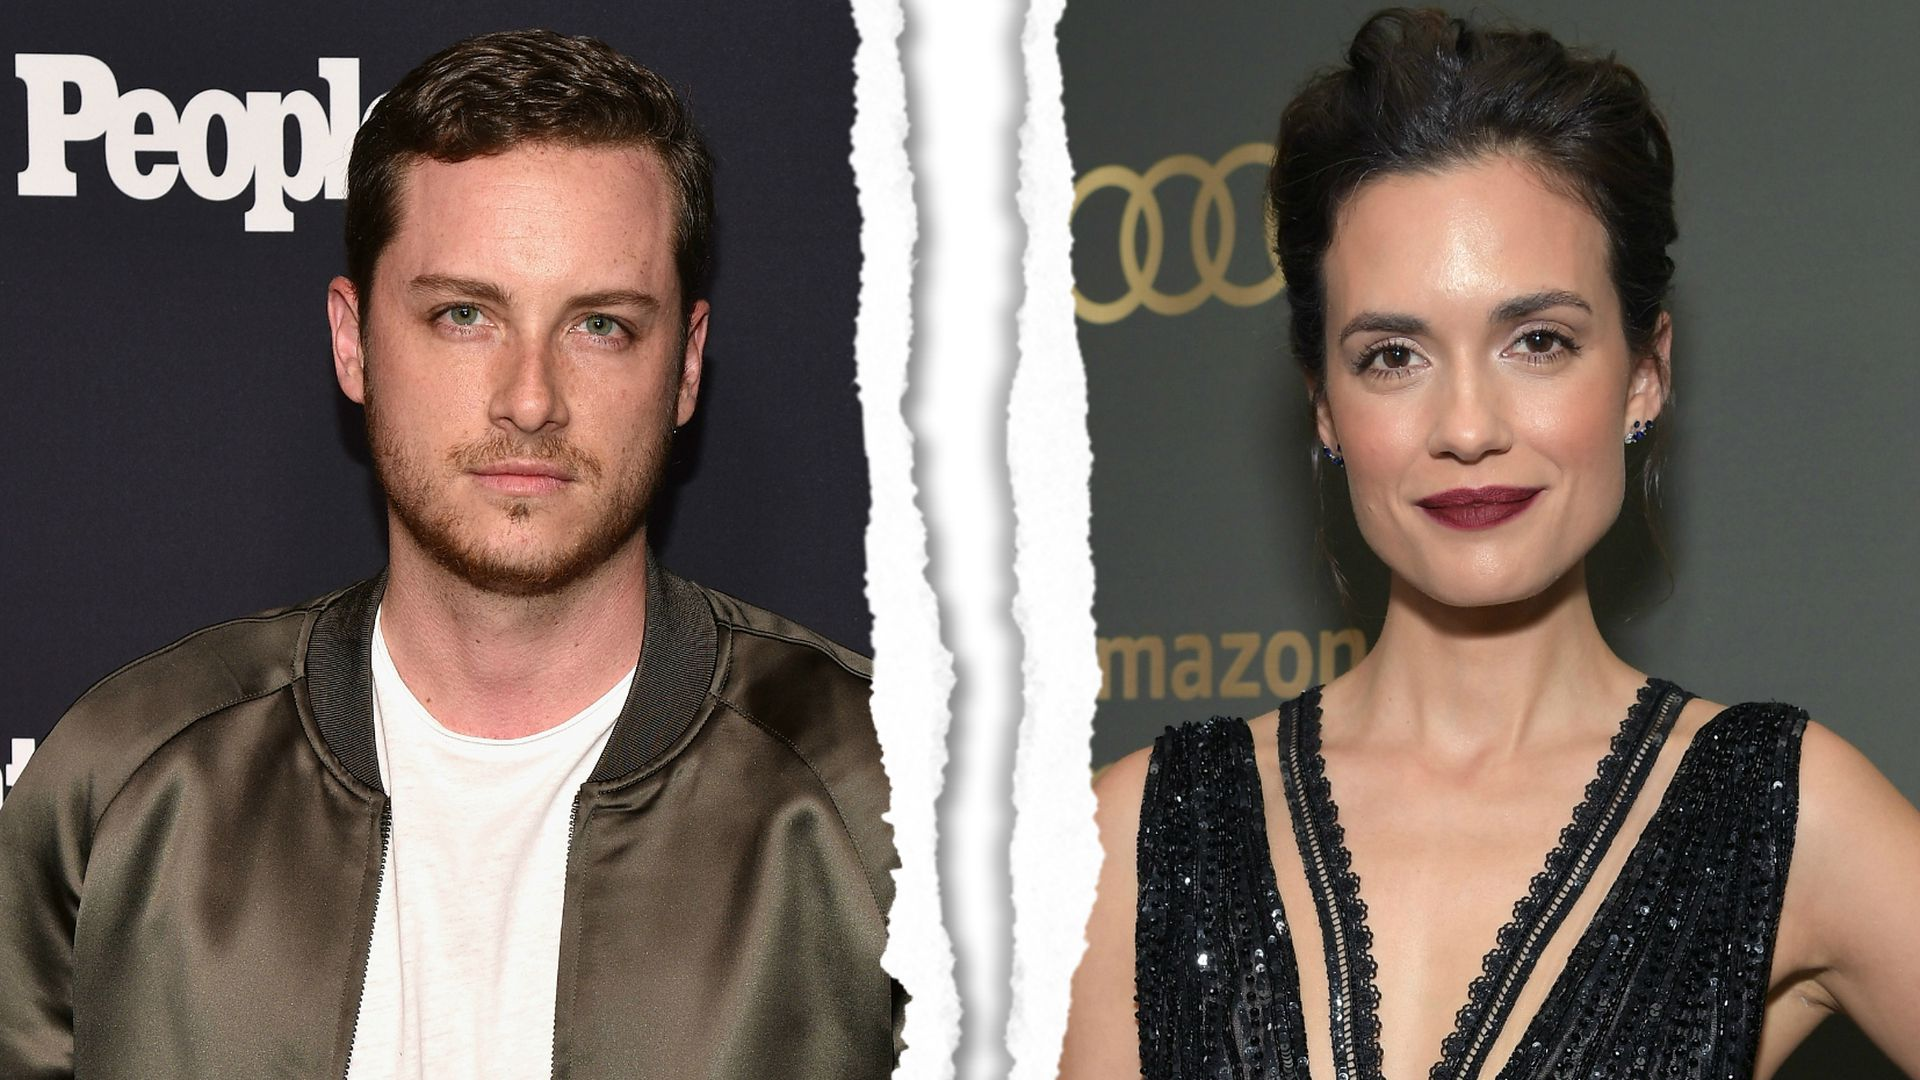 Jesse lee soffer is dating chicago med�s torrey devitto